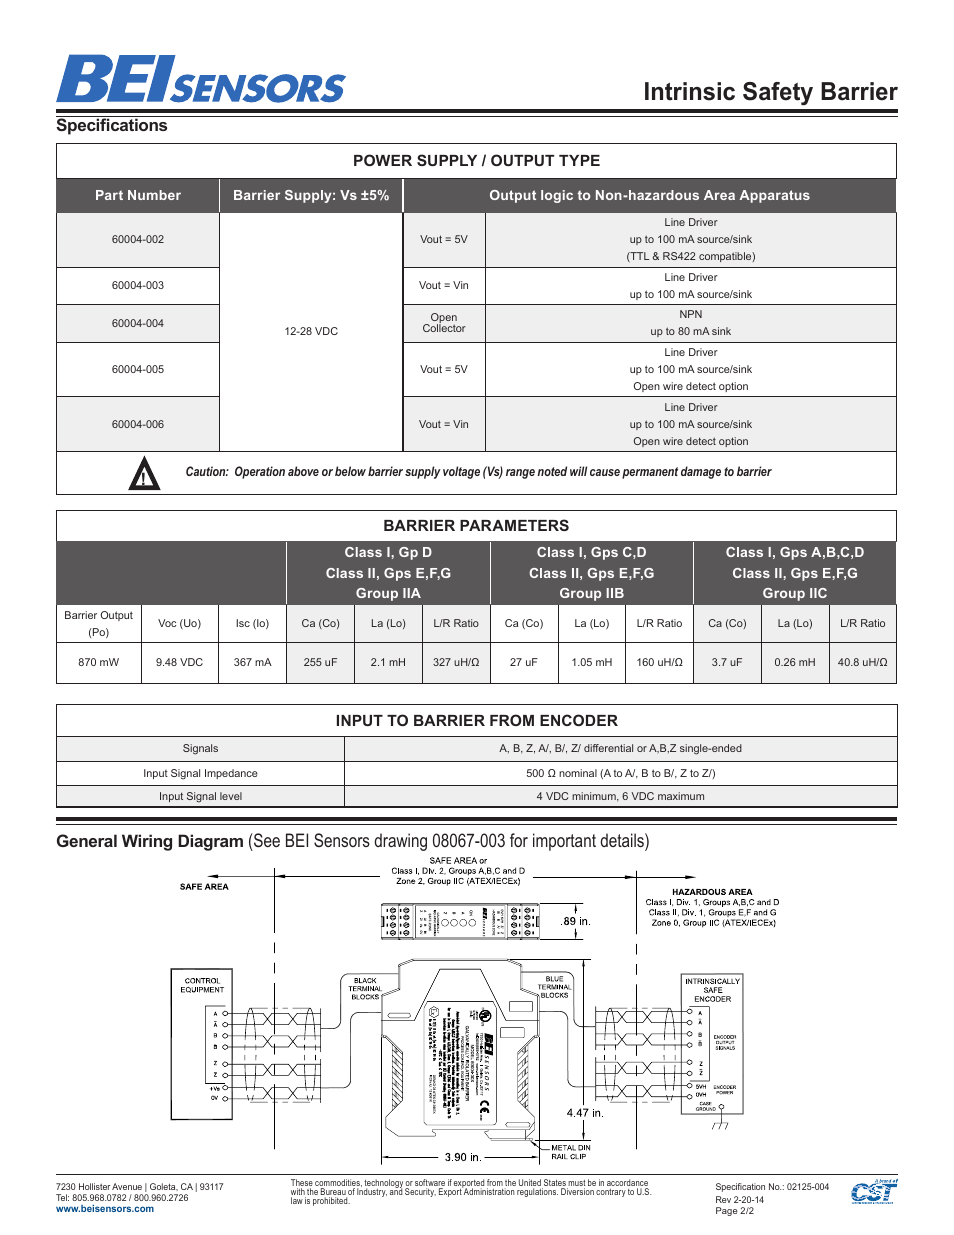 bei sensors intrinsic safety barrier page2 intrinsic safety barrier, specifications, general wiring diagram bei encoder wiring diagram at creativeand.co